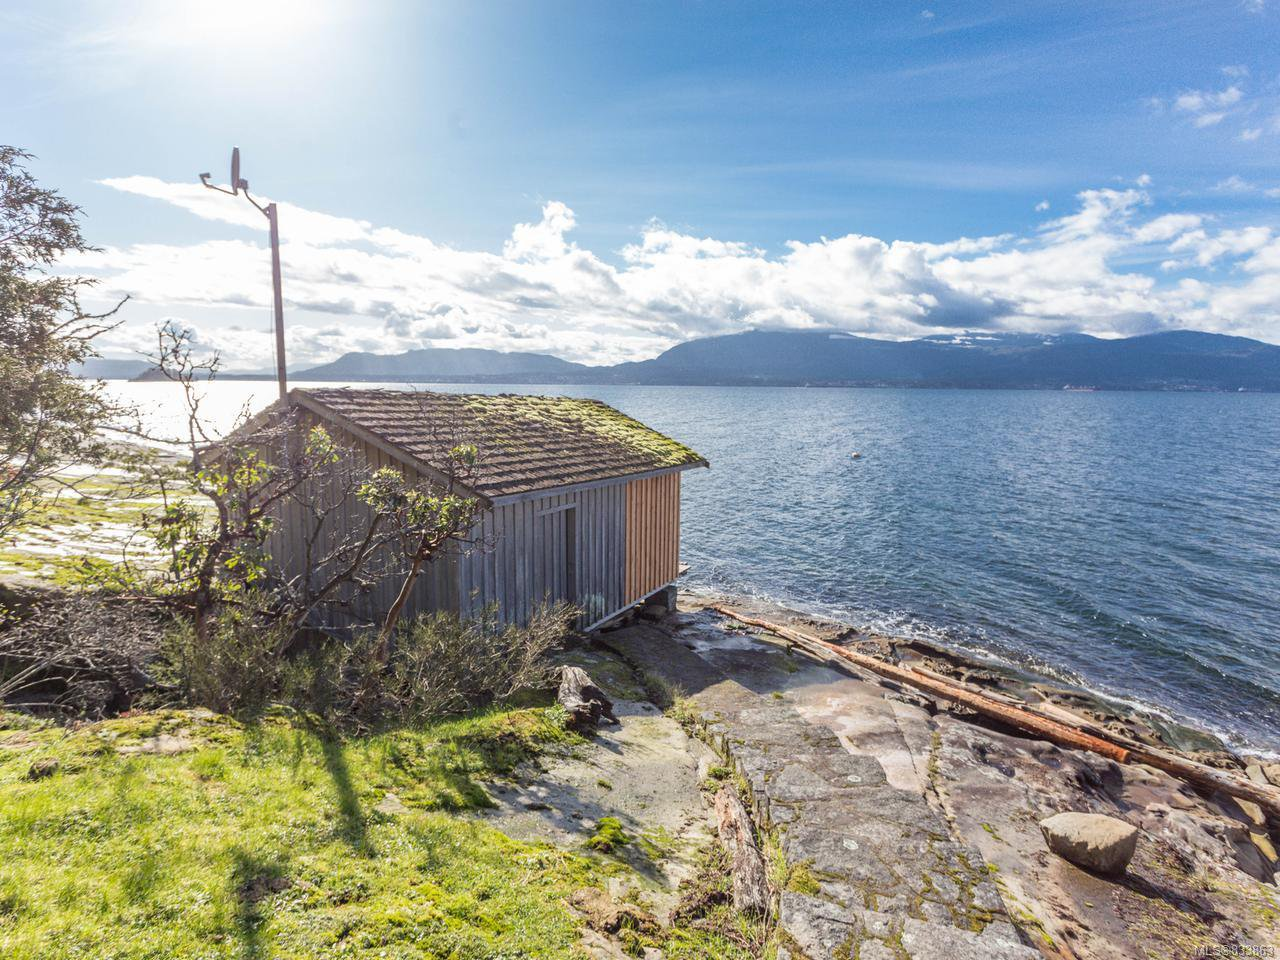 Photo 5: Photos: 255 Forbes Dr in THETIS ISLAND: Isl Thetis Island House for sale (Islands)  : MLS®# 833863